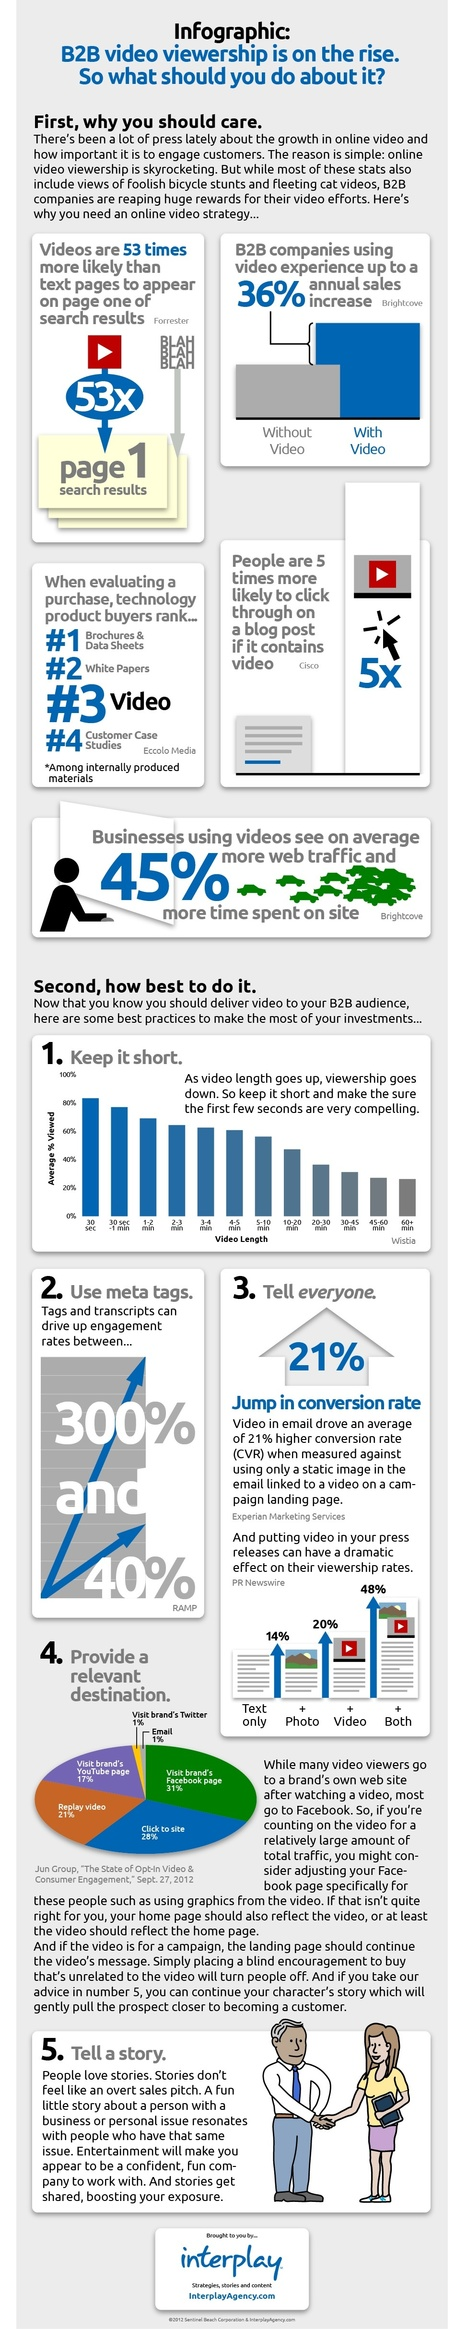 B2B Video Viewership is on the Rise. So What Should You Do About It? [Infographic] | Social Media Today | Big Media (En & Fr) | Scoop.it